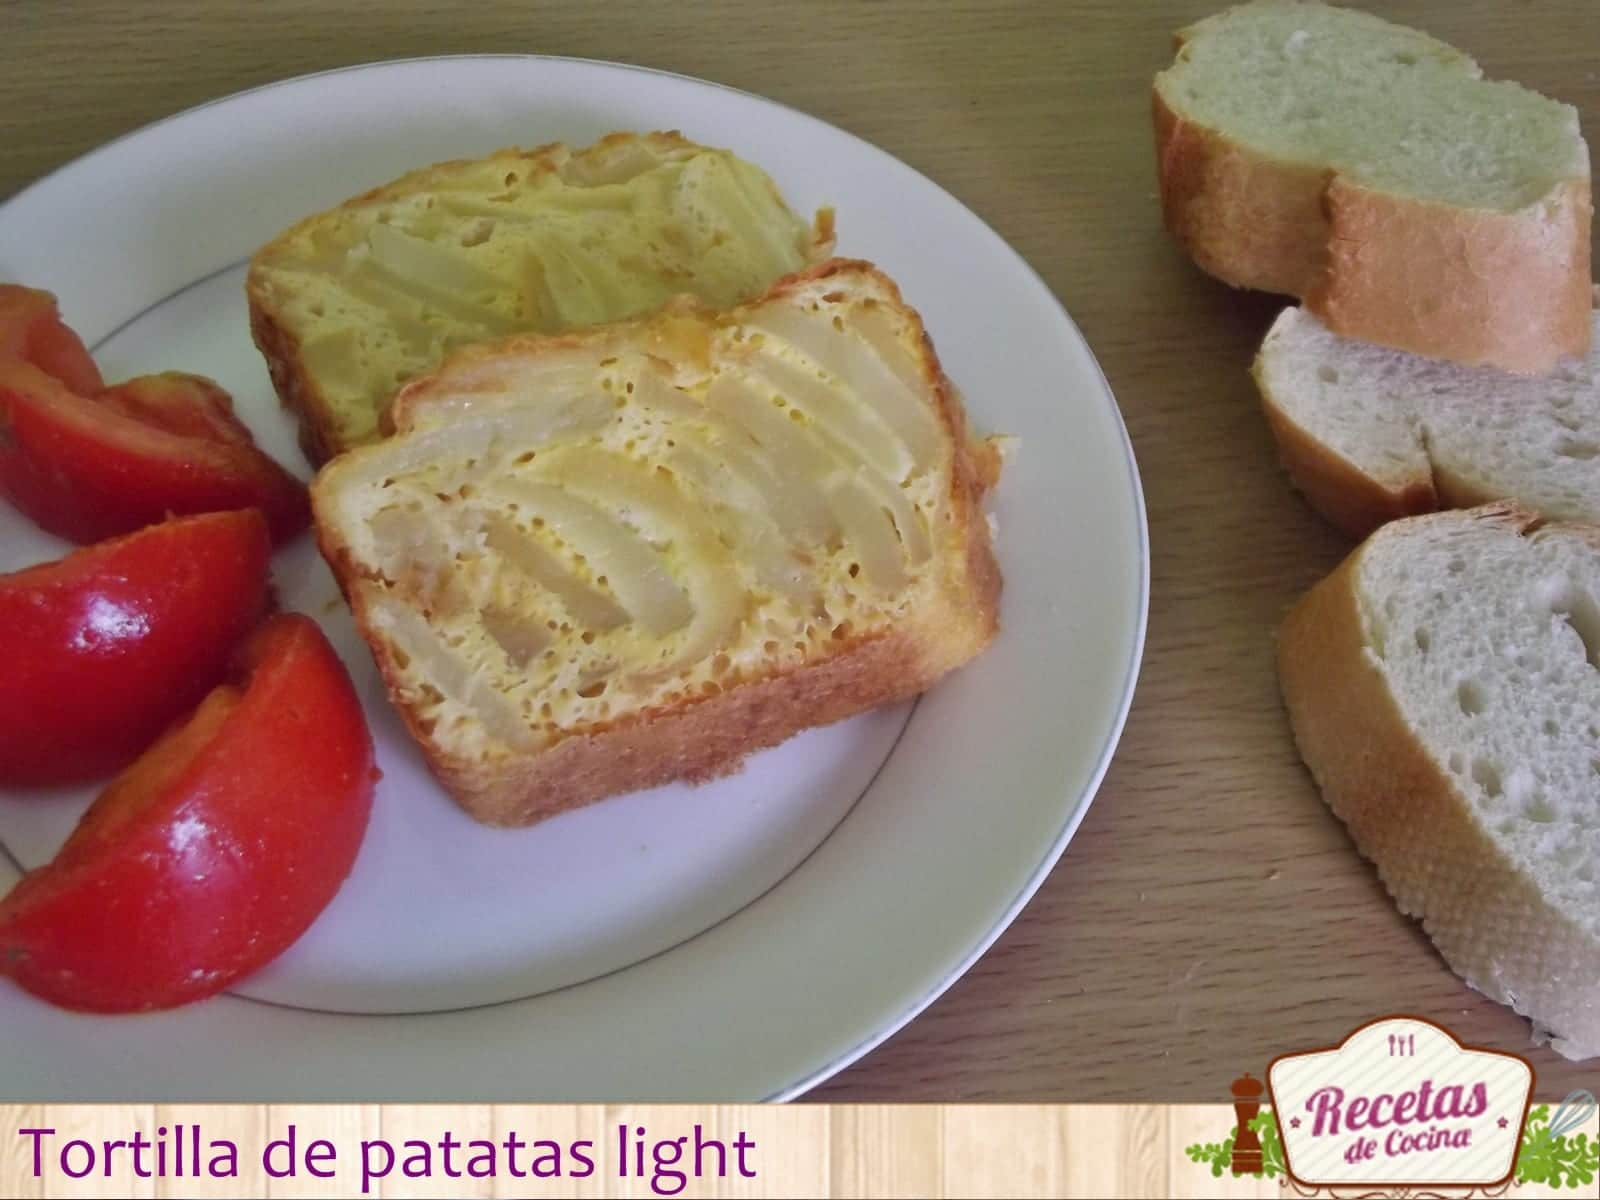 Tortilla de patatas light, una opción saludable